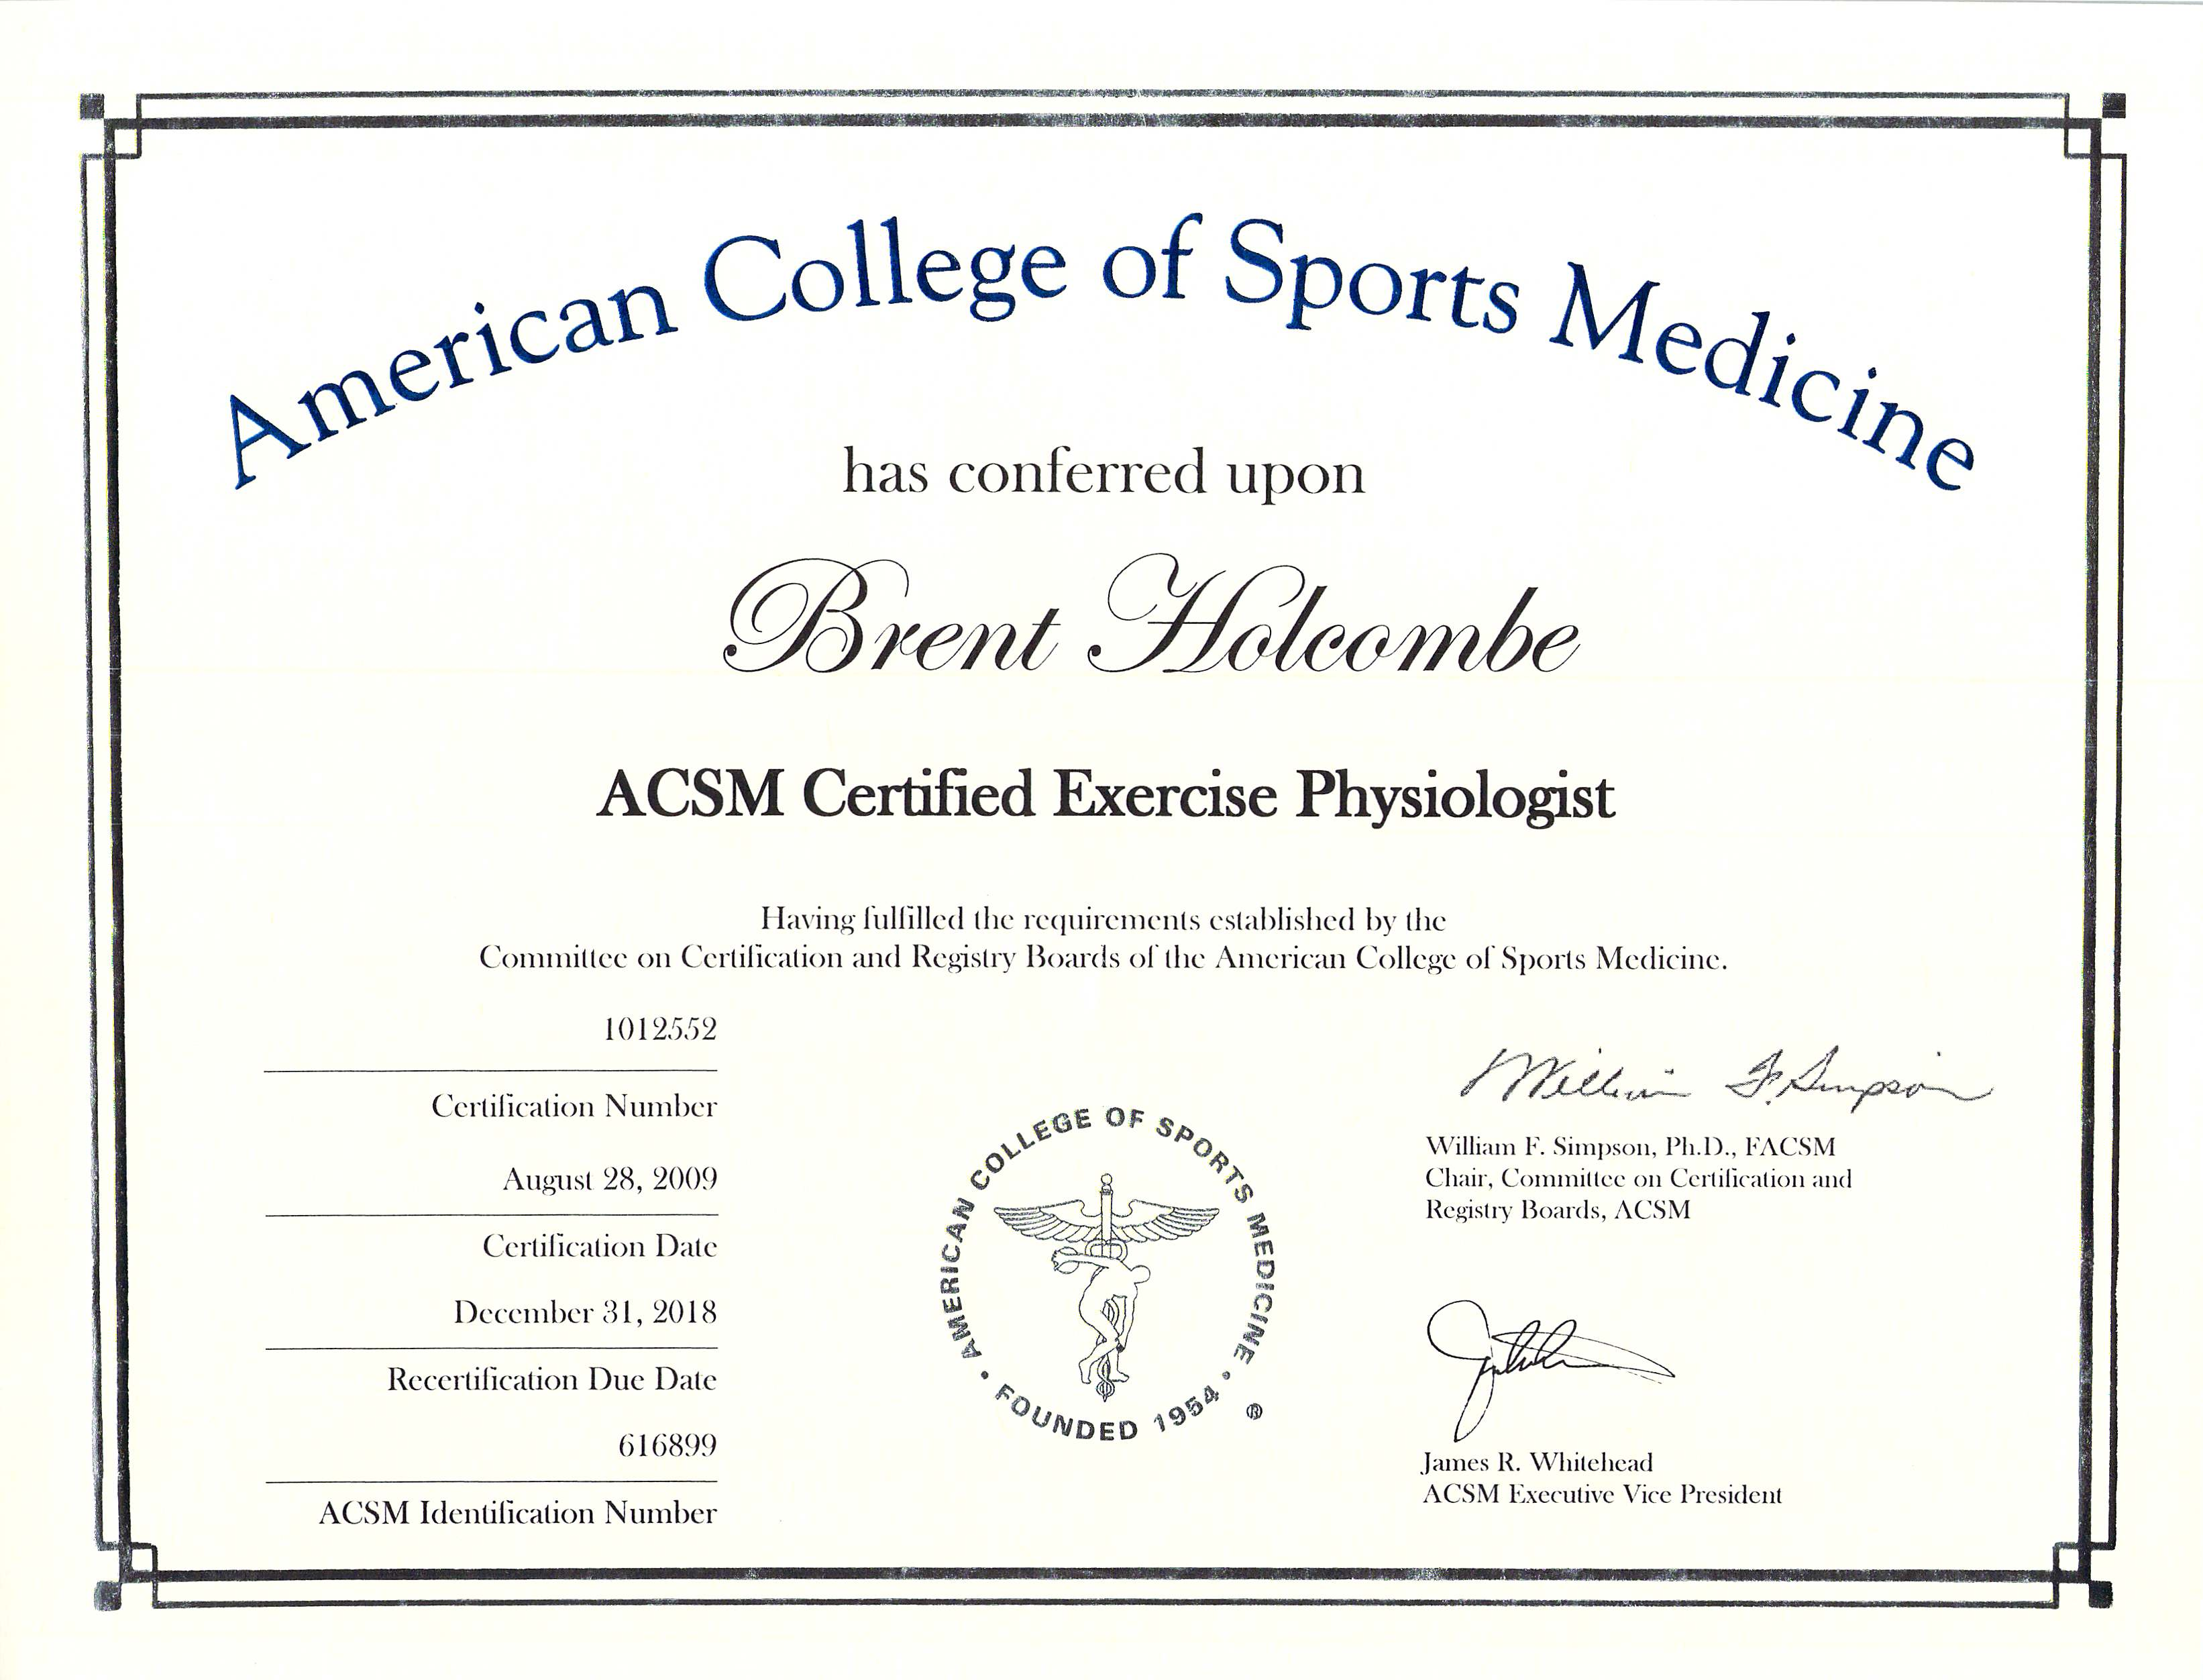 Exercise Physiologist